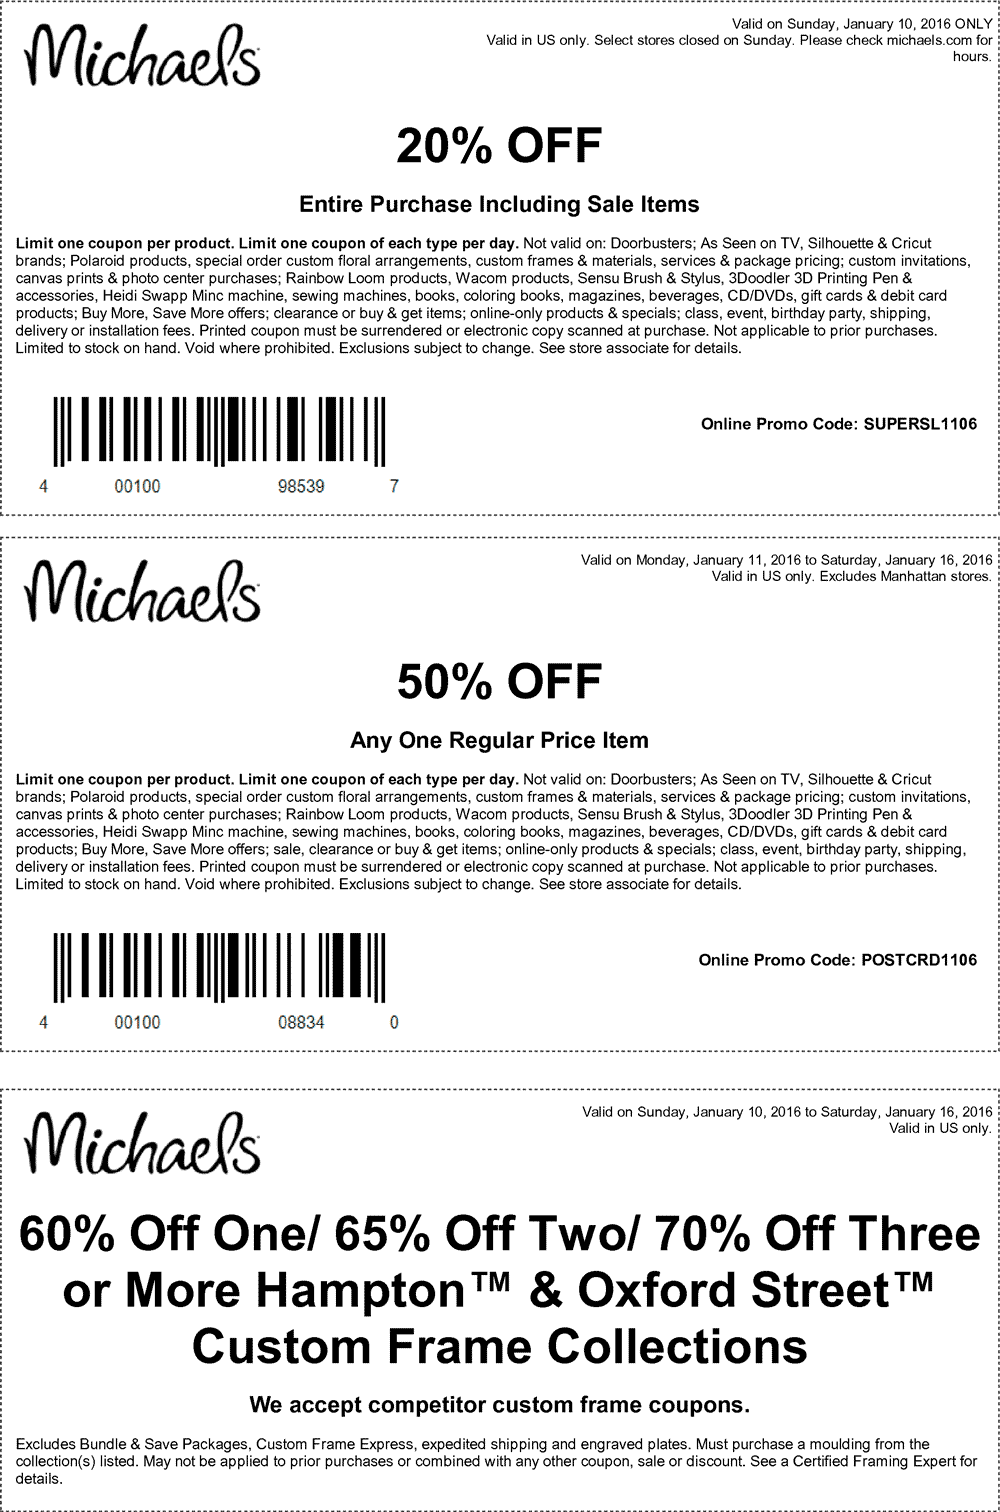 Michaels Coupon October 2017 20% off everything, 50% off a single item at Michaels, or online via promo code POSTCRD1106